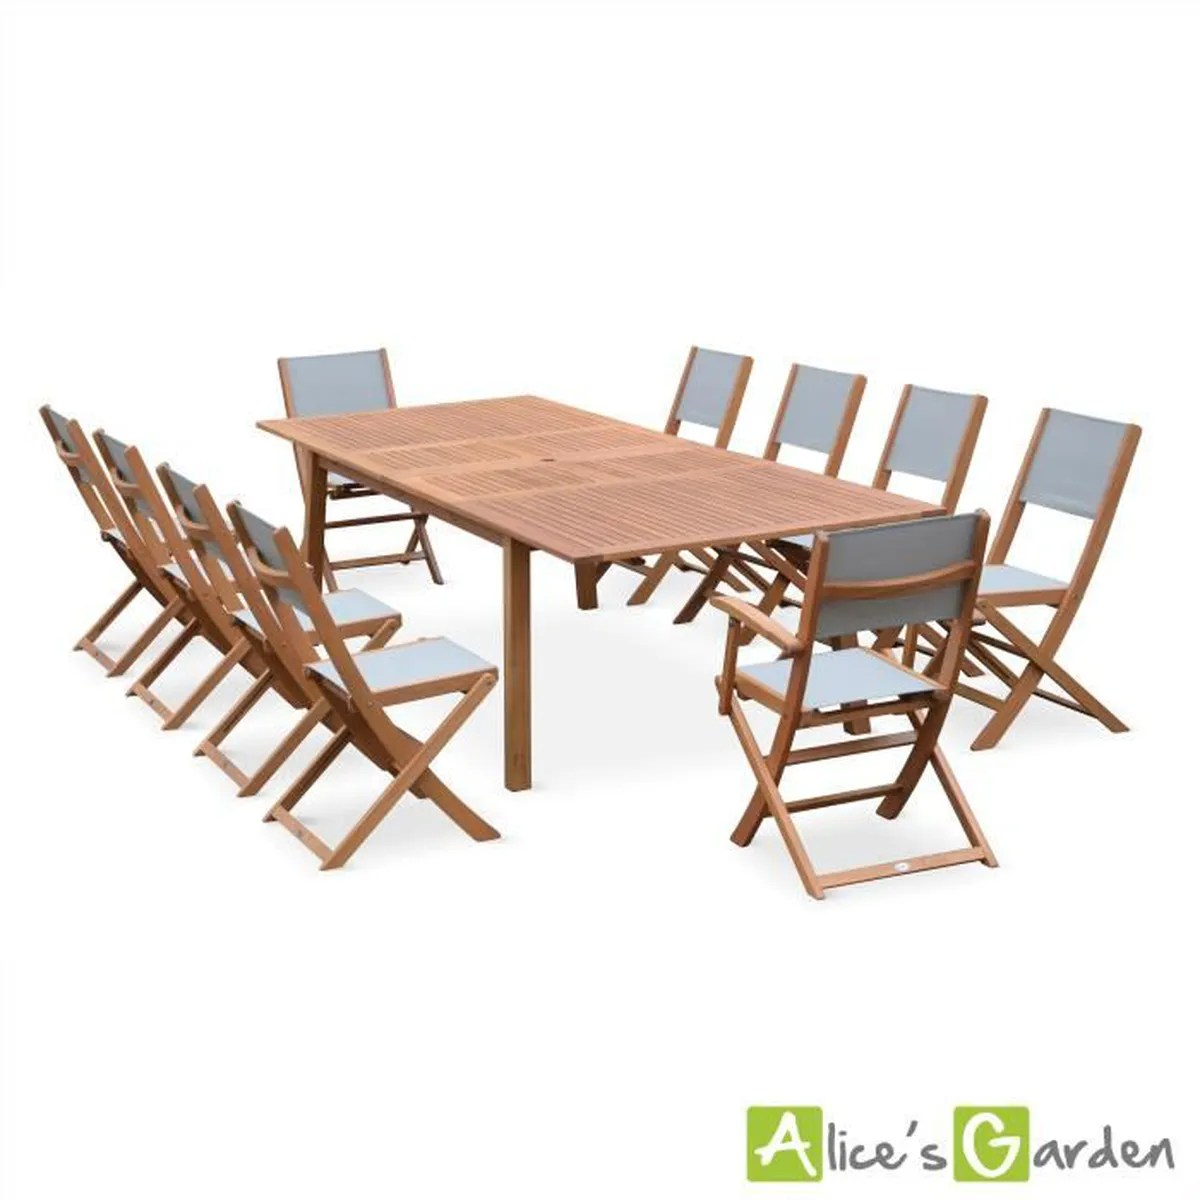 Alice S Garden Salon De Jardin Aluminium Table 180cm 8 Fauteuils En ...